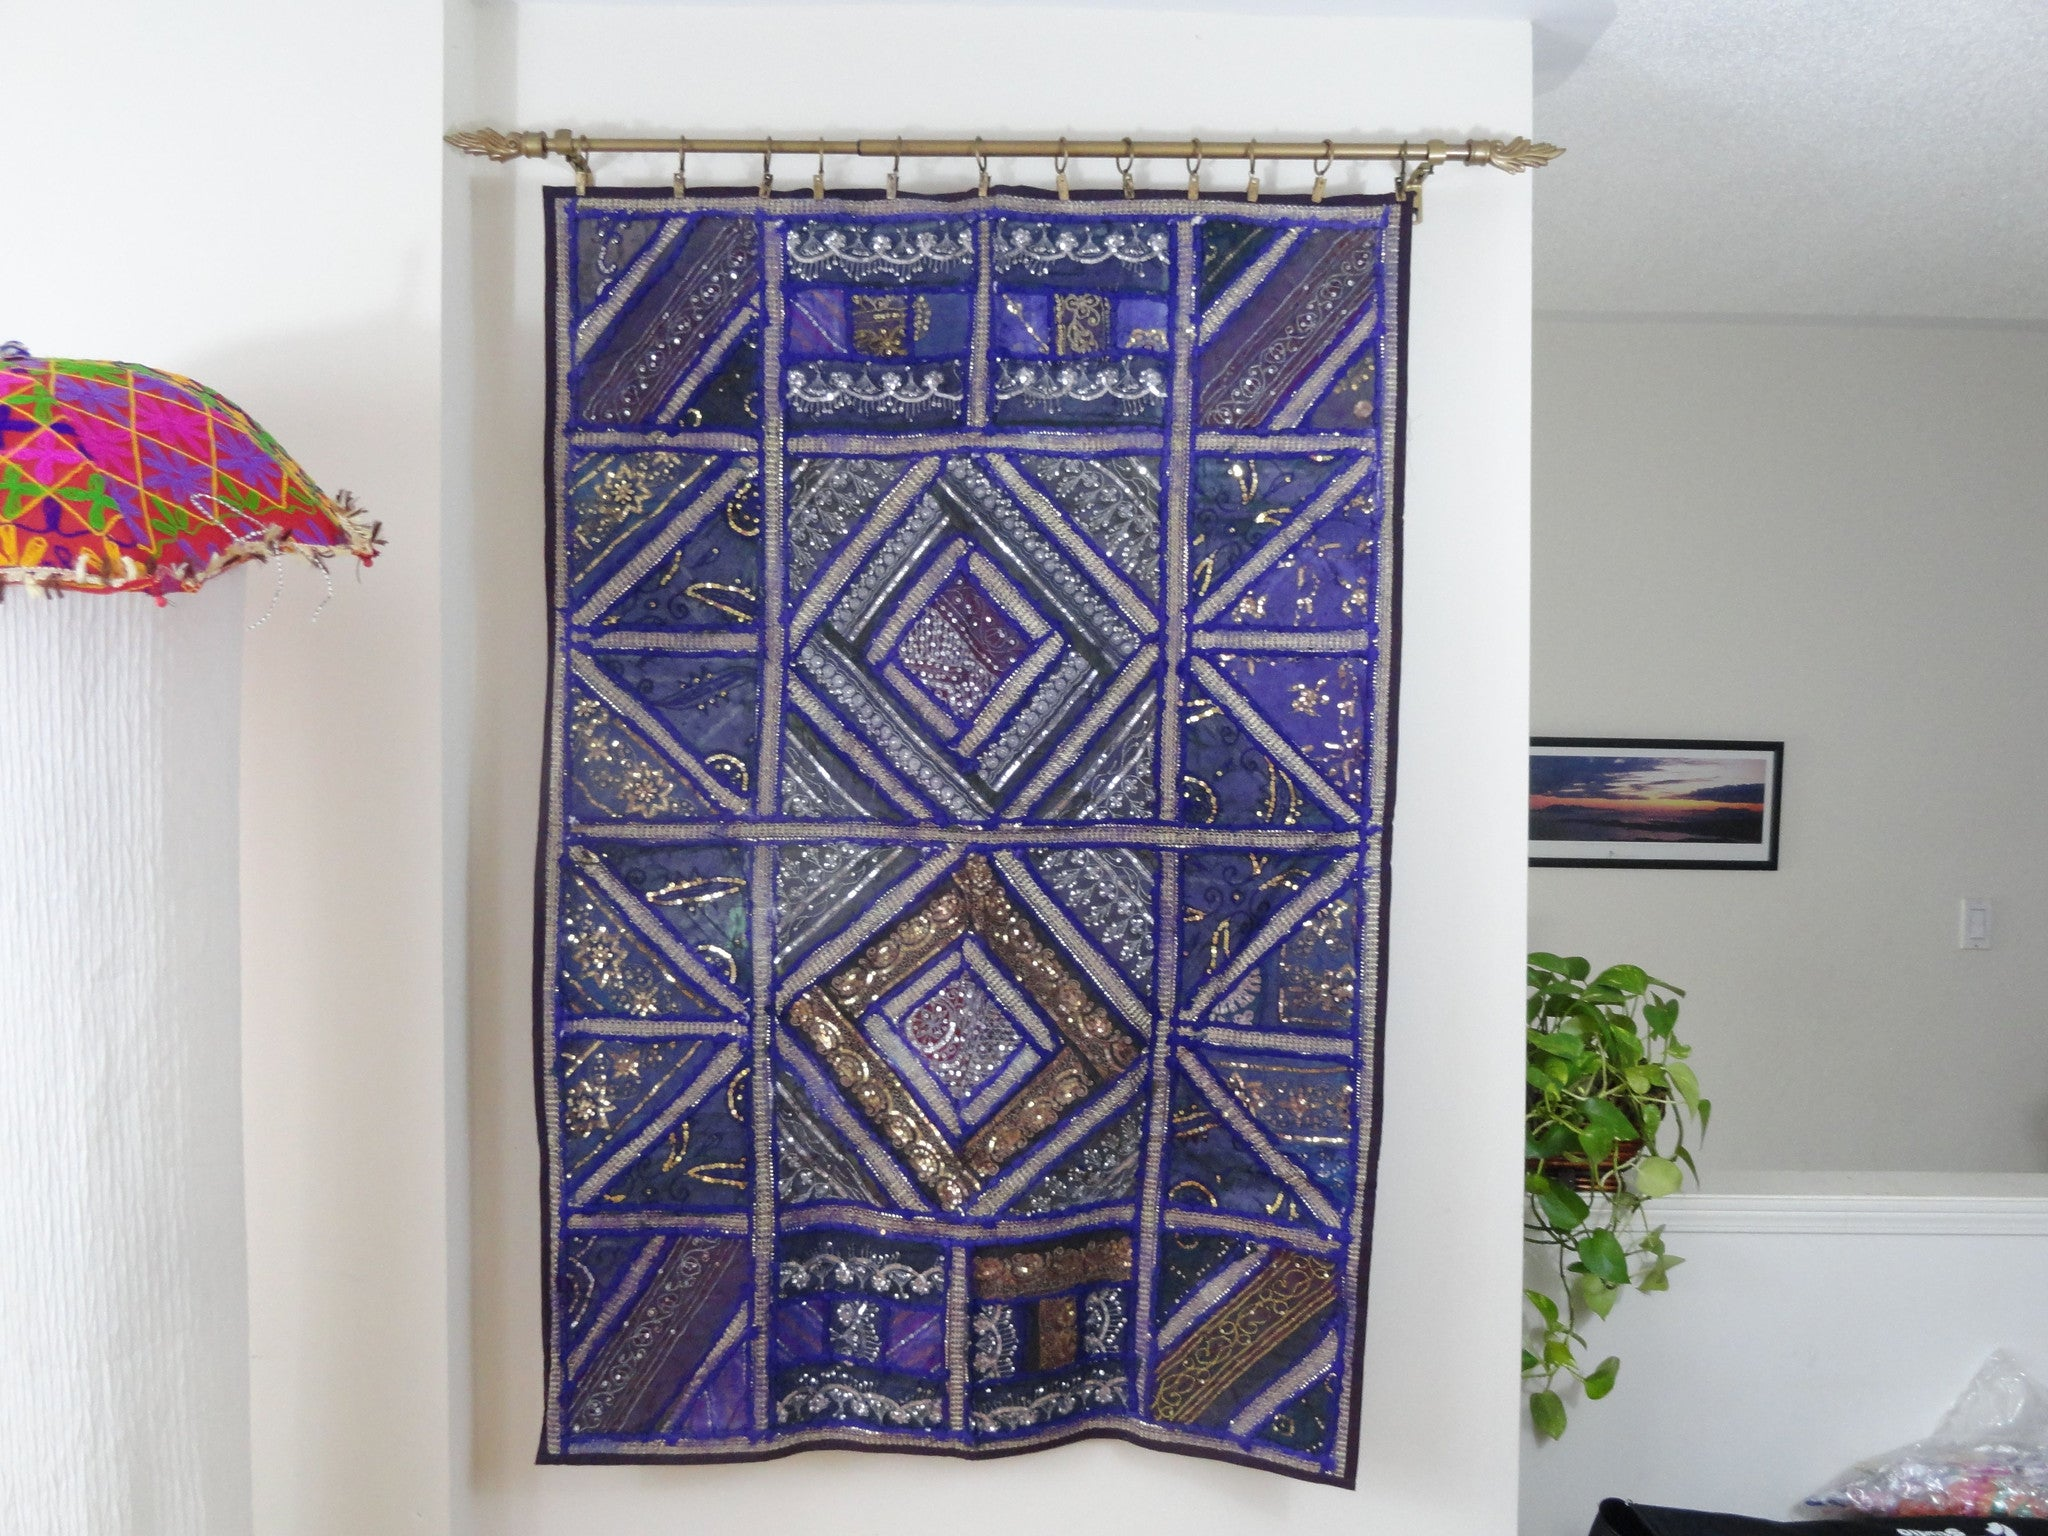 Fabric Wall Tapestry Wall Hanging Purple Strokes Embroidery And Patc Artikrti